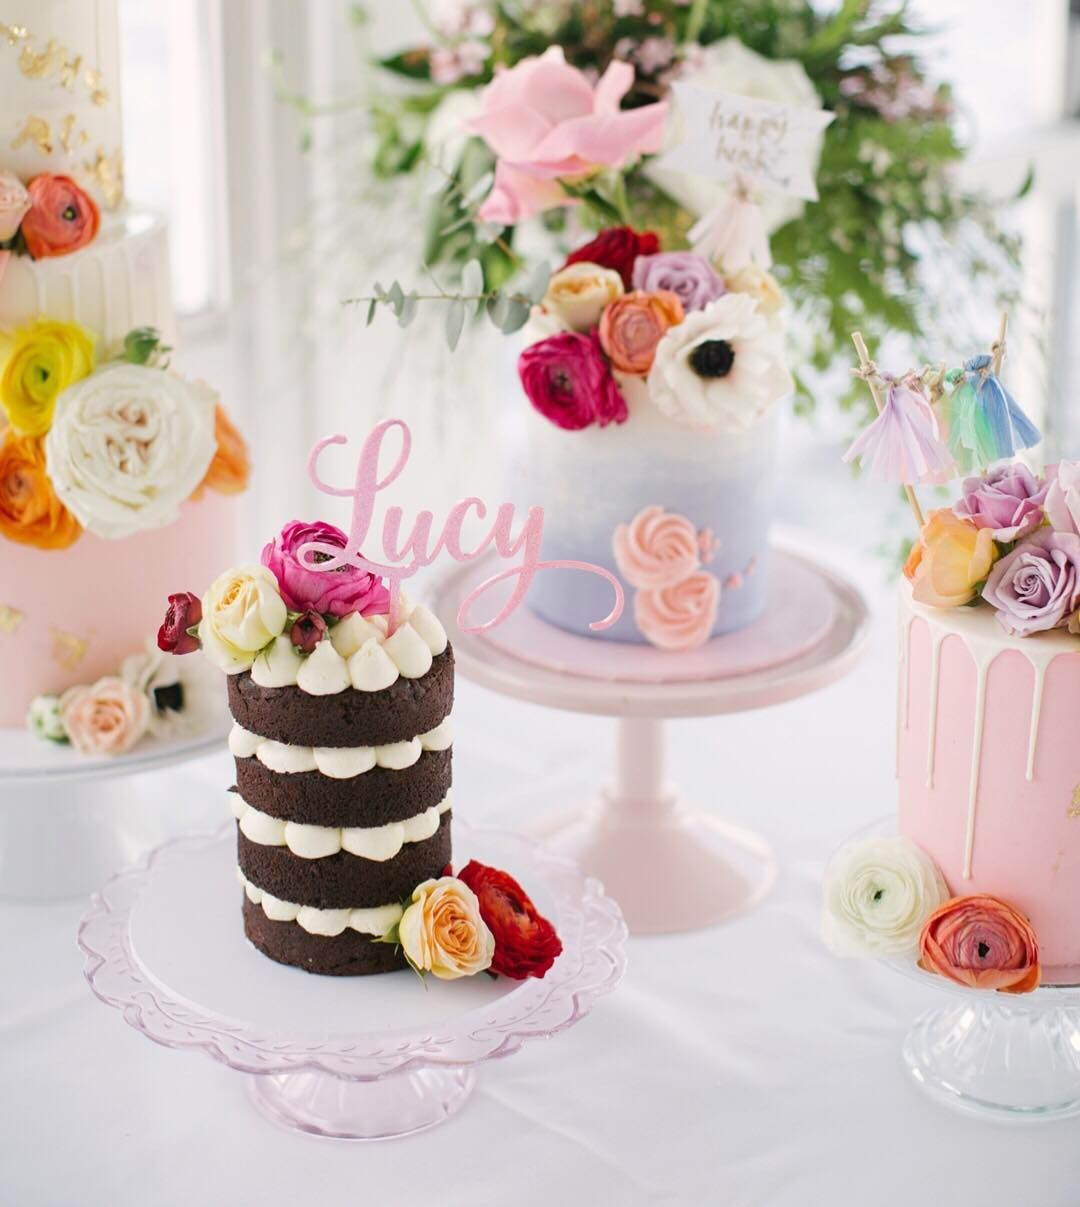 Colourful cakes by blonde baking mama in perth angela